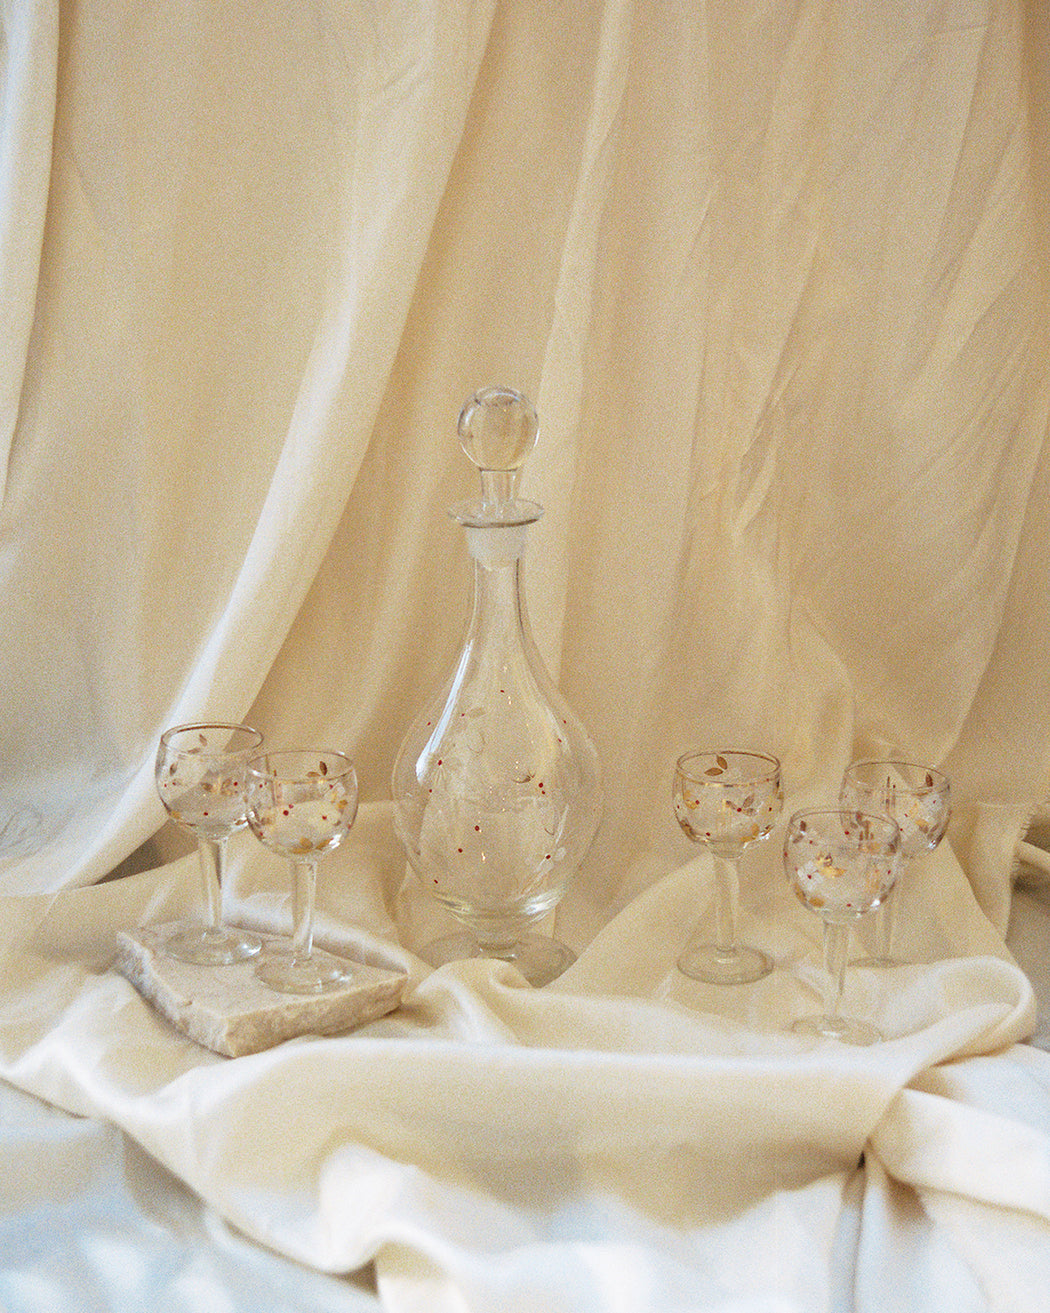 Vintage Painted Glass Decanter and Small Apertif Glasses